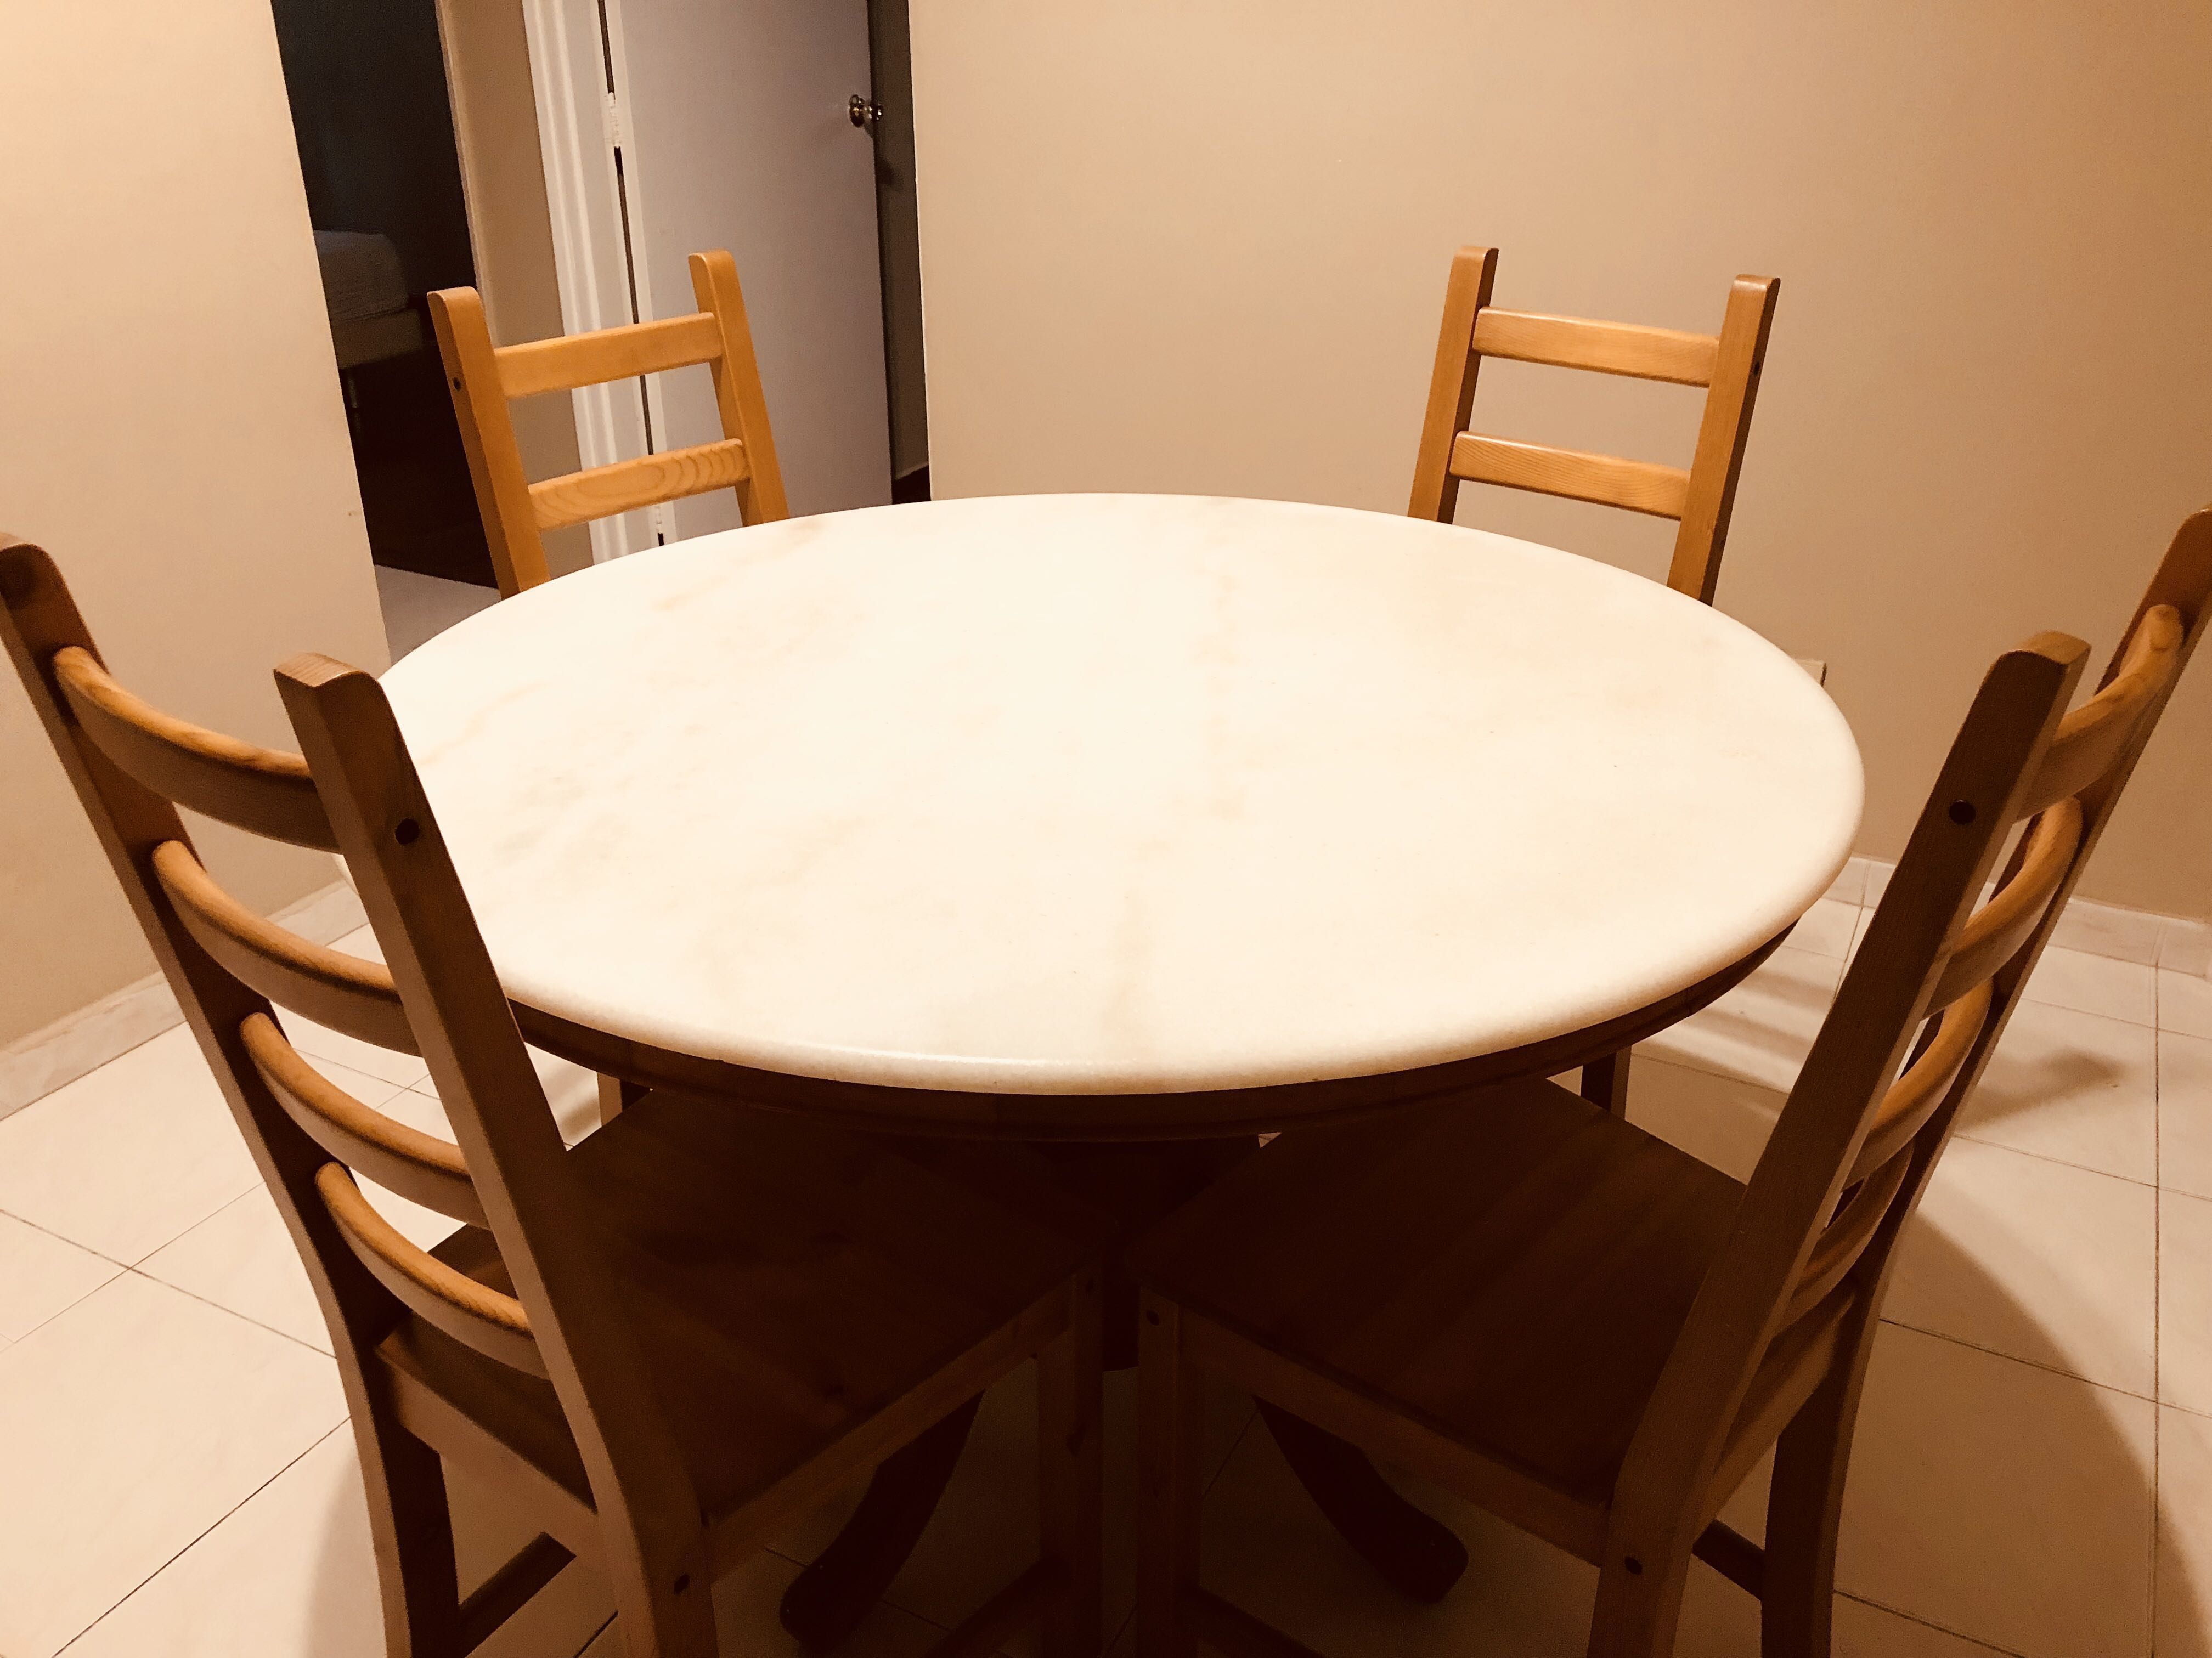 Marble Top Round Dining Table With Four Chairs Furniture Tables Chairs On Carousell